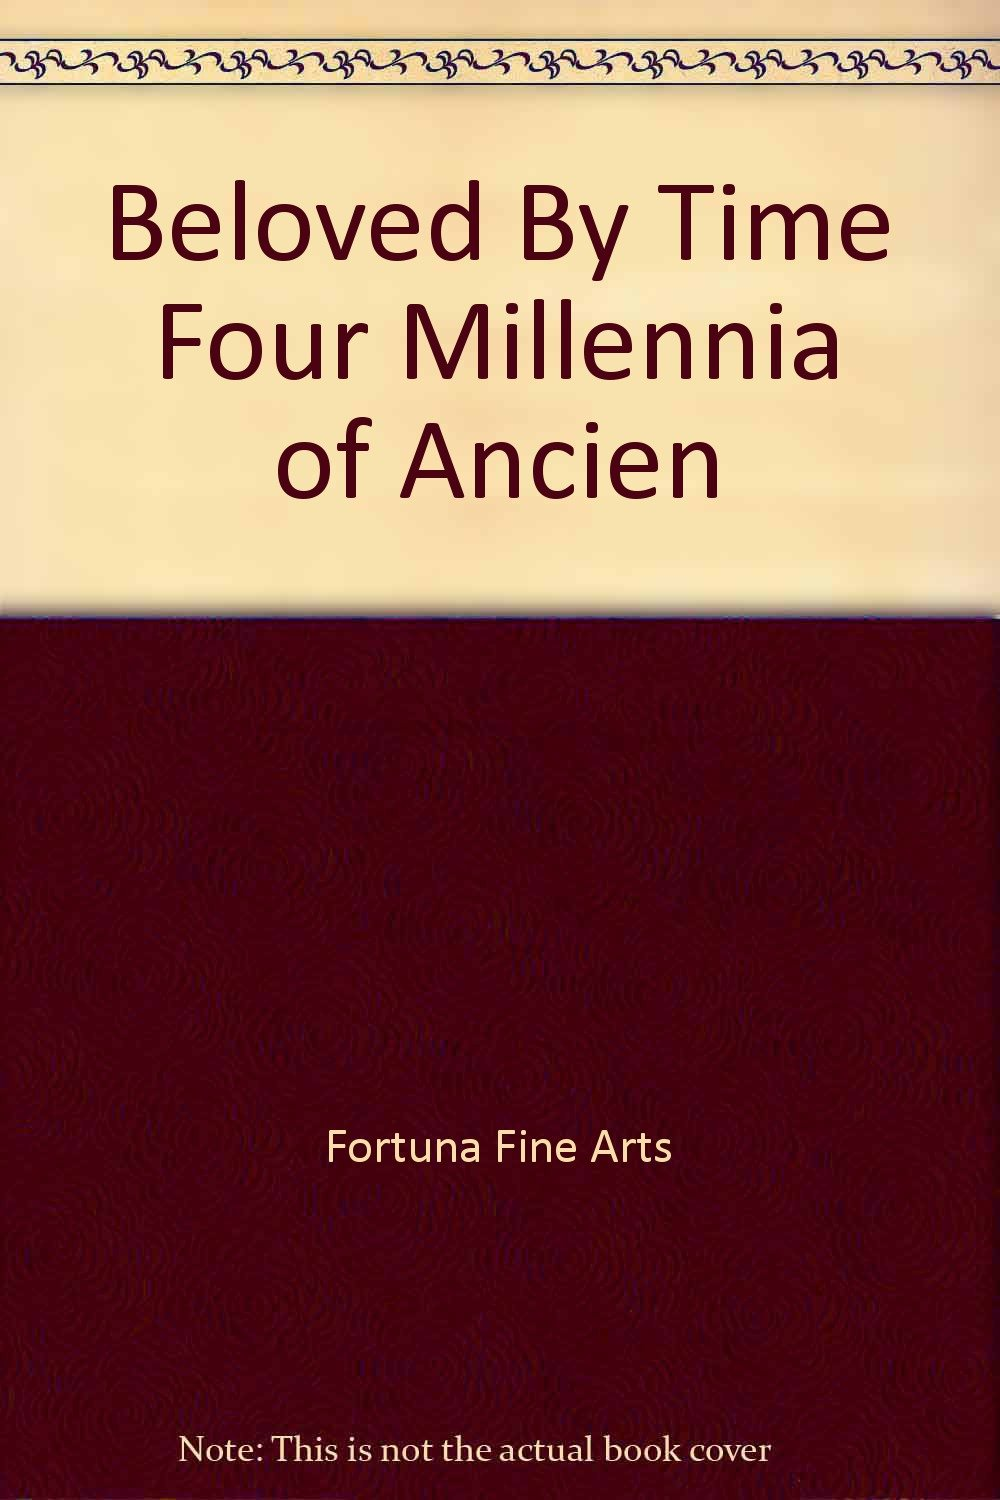 Beloved By Time Four Millennia of Ancien pdf